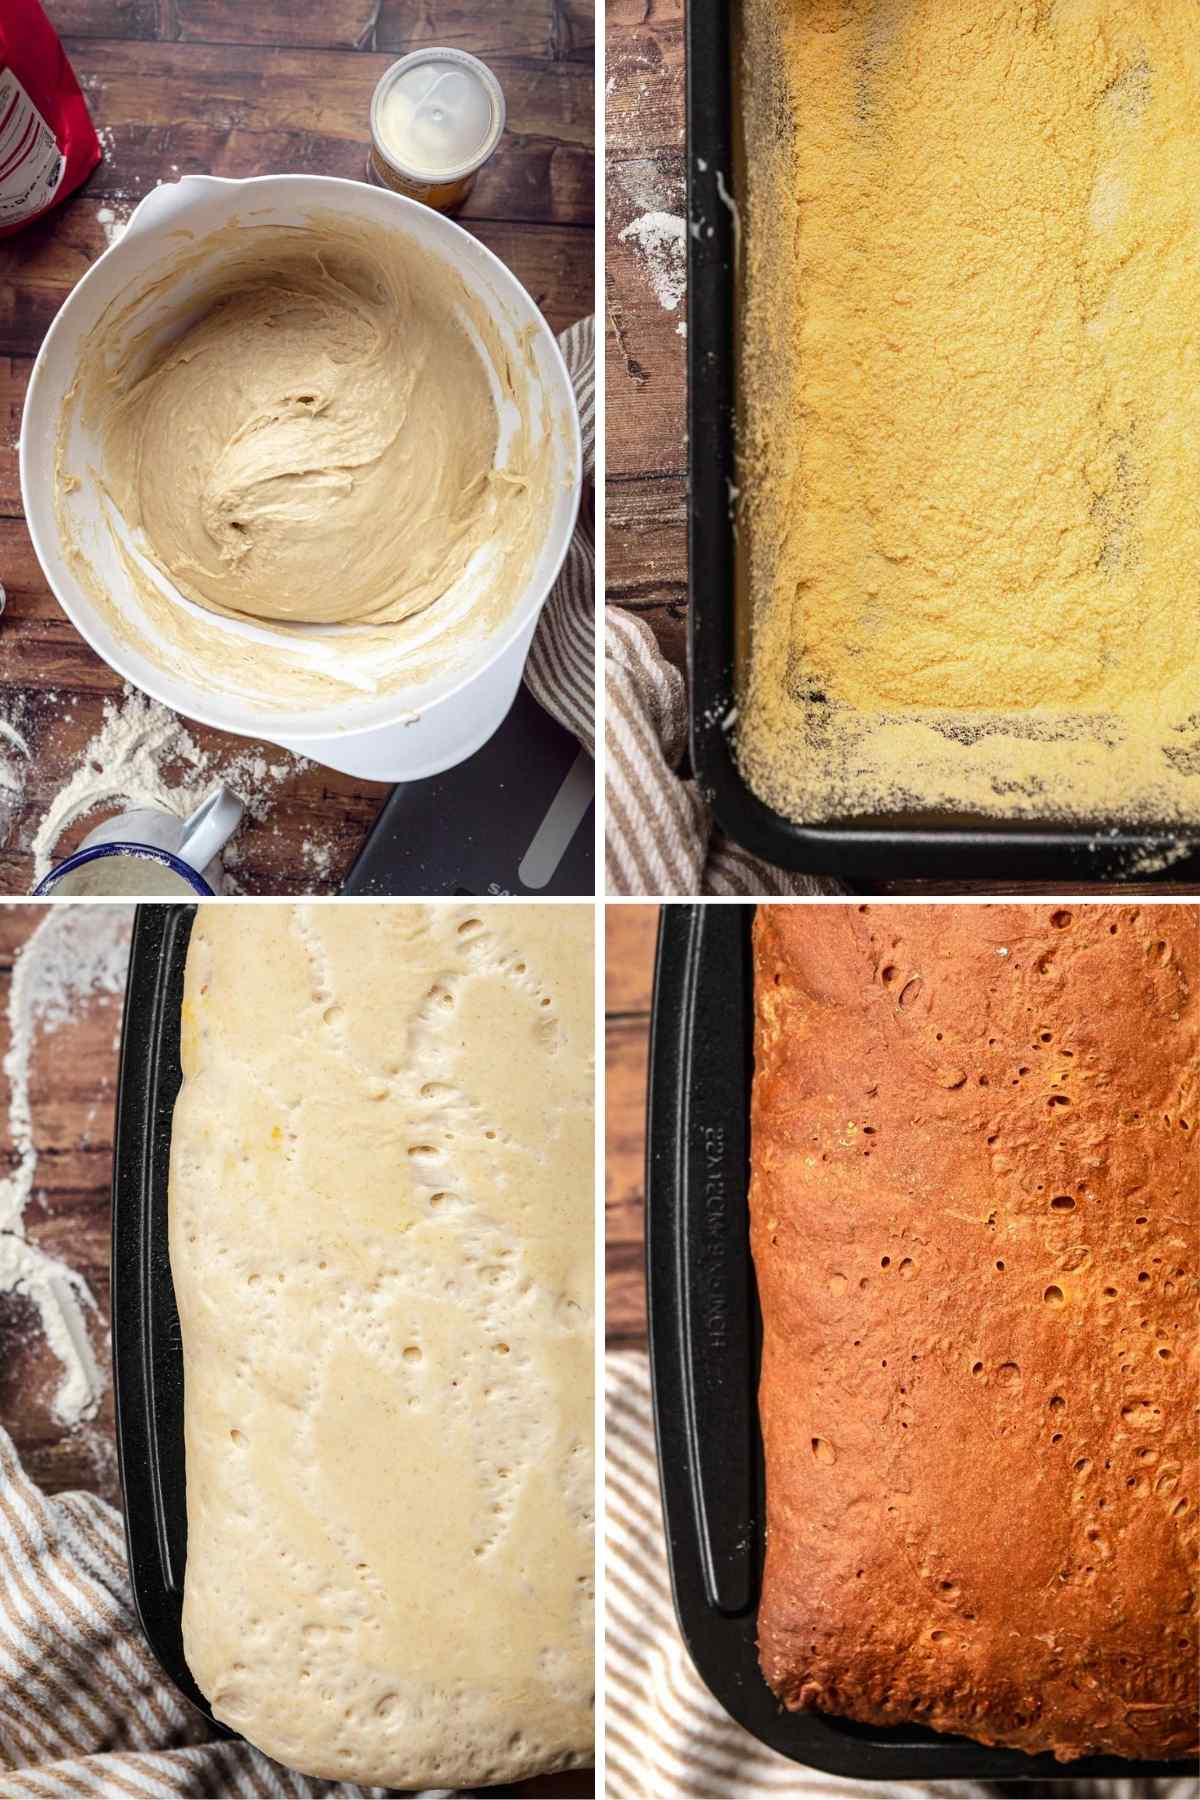 English Muffin Bread dough in bowl, loaf pan with corn starch, proofed dough in loaf pan, and baked bread in loaf pan